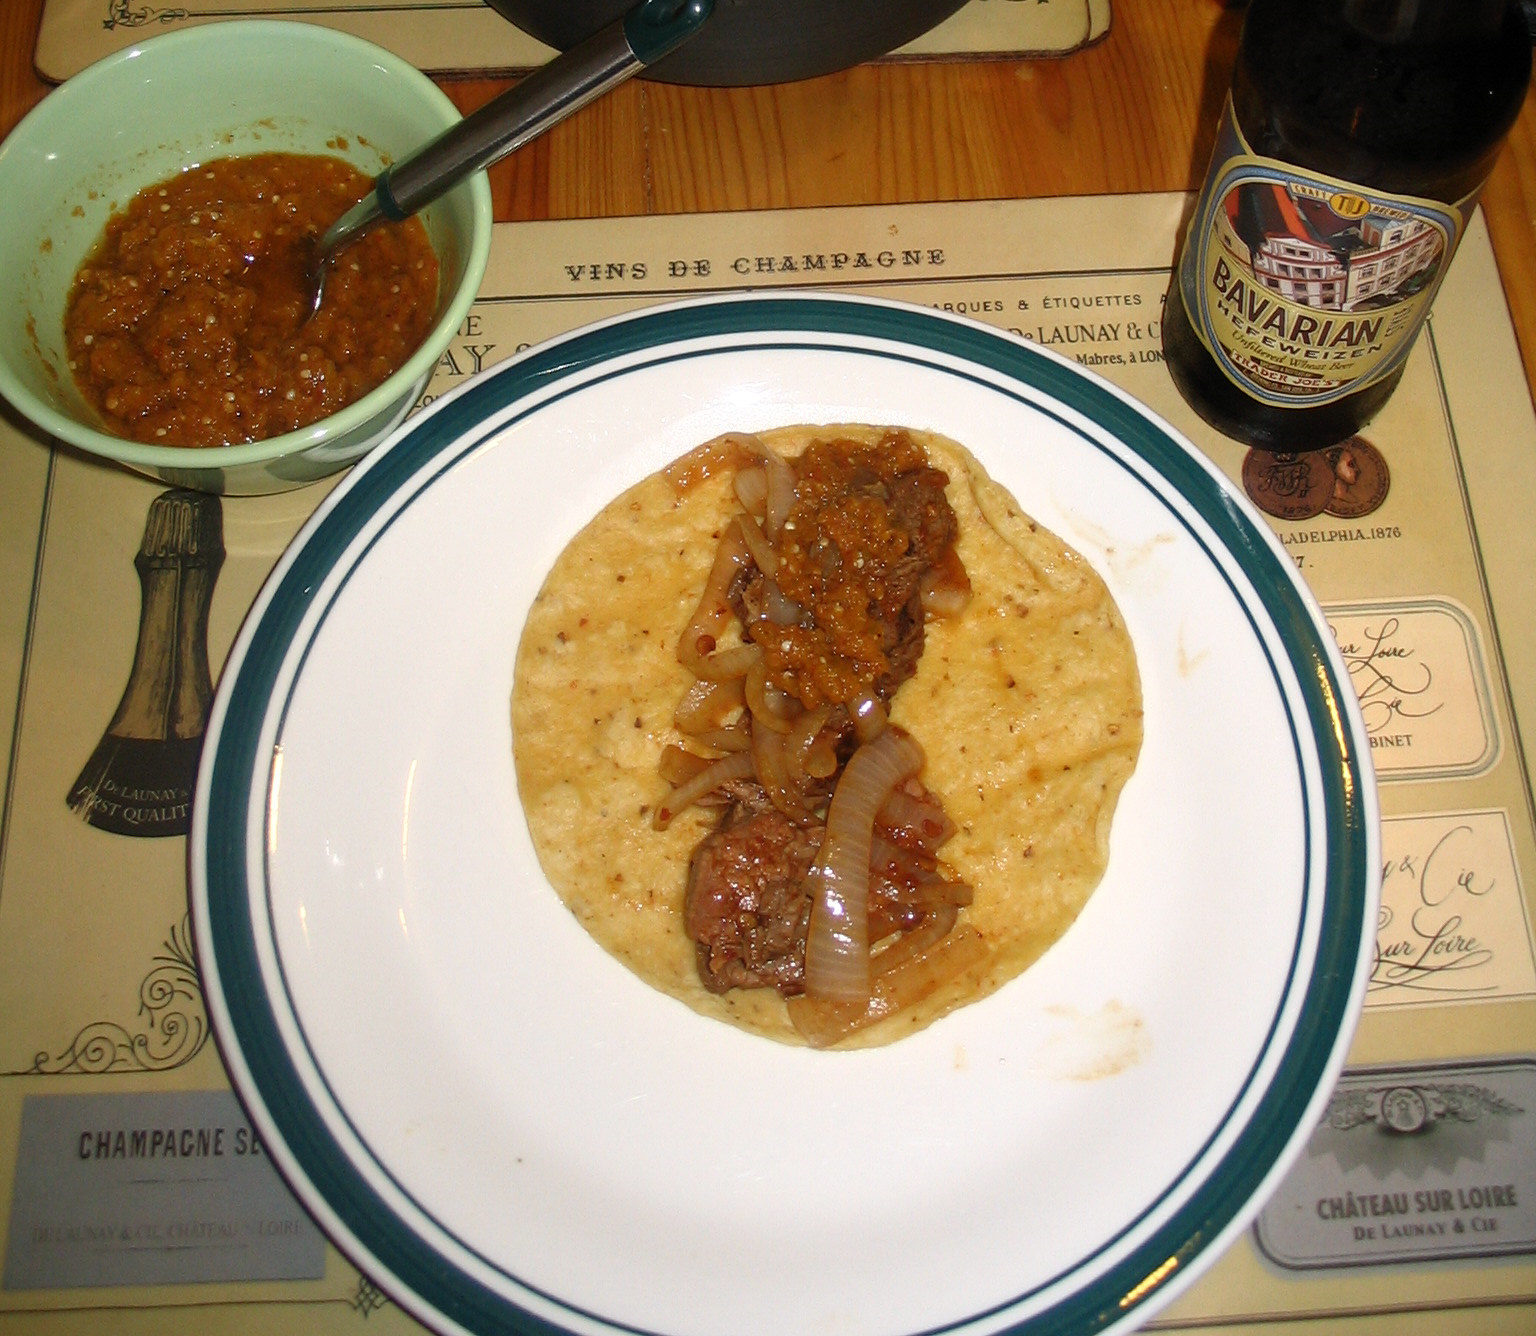 ... by Rick Bayless: Chipotle Beef Tacos with Caramelized Onions Review